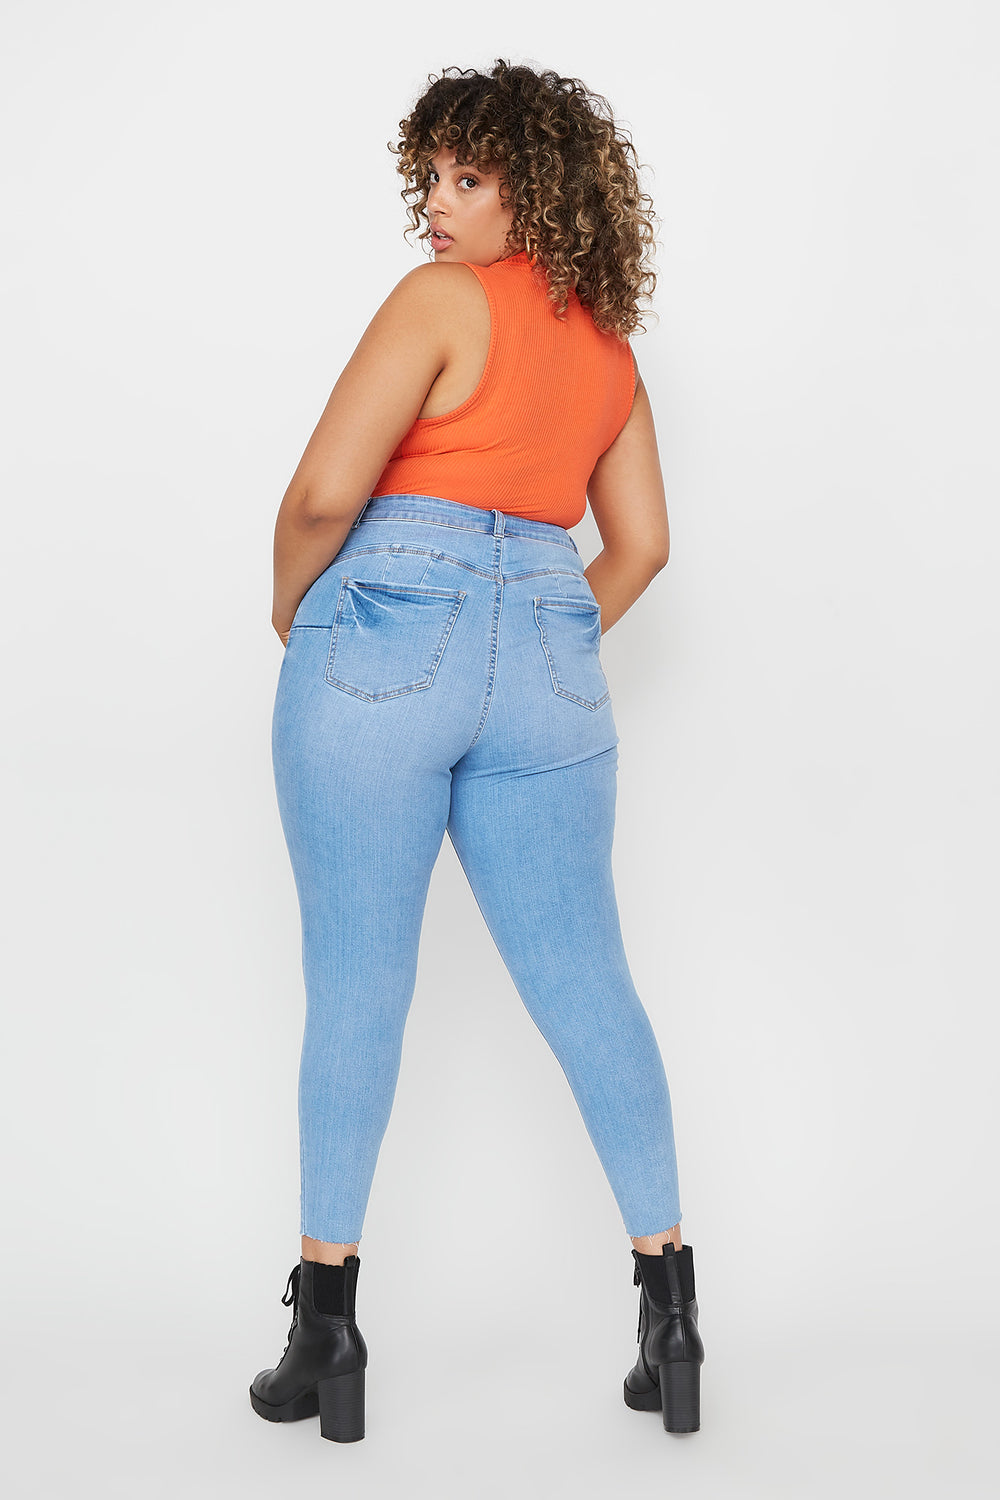 Plus Size Butt, I Love You Push-Up High-Rise Distressed Cropped Skinny Jean Sky Blue